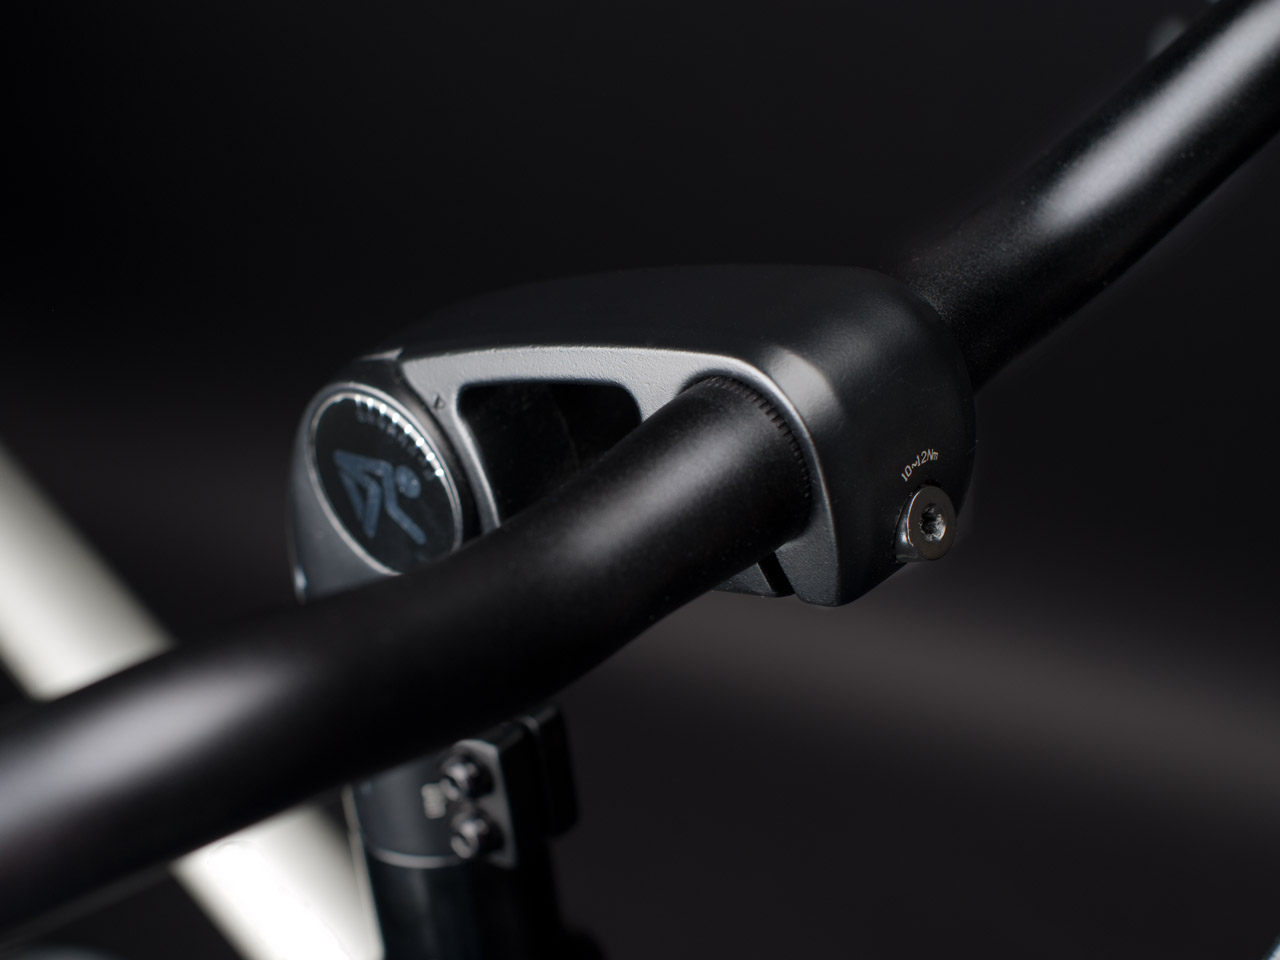 Justera lightweight stem